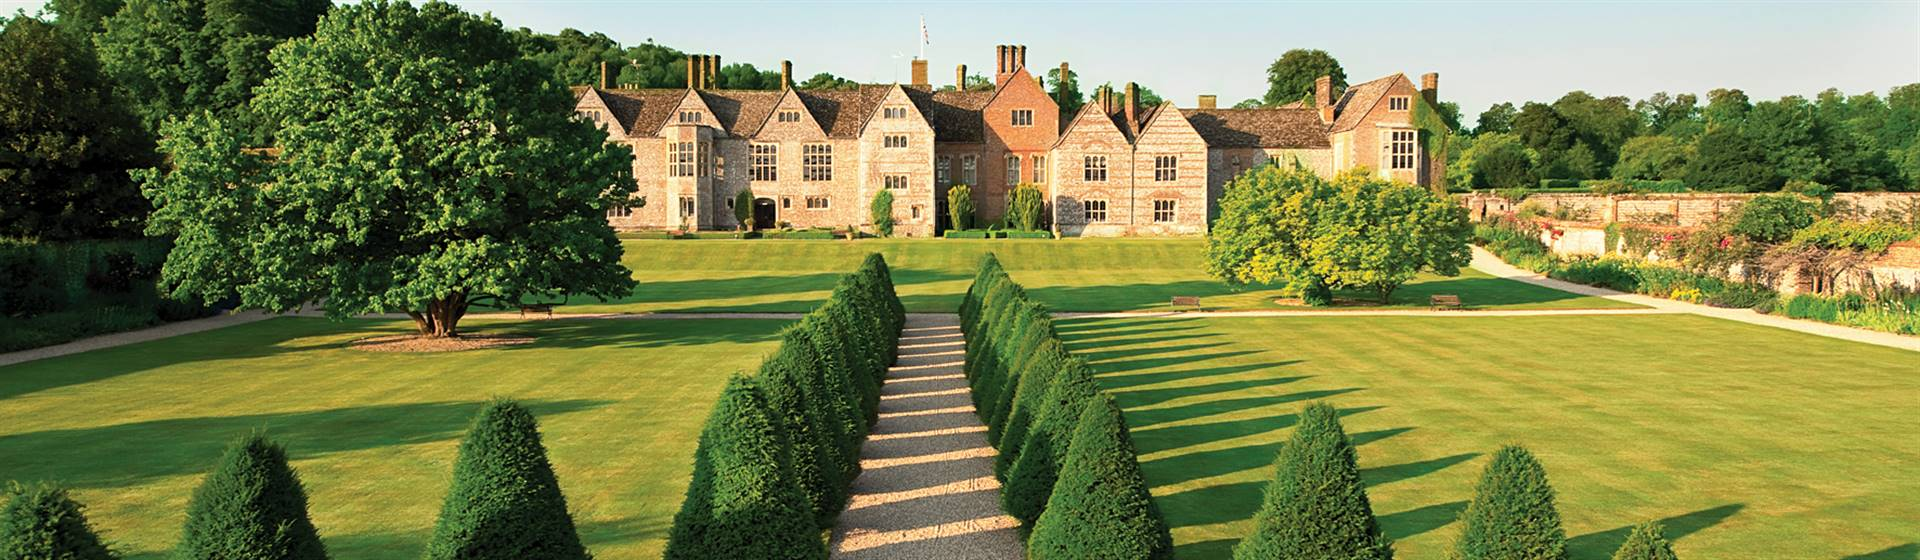 Stunning Littlecote House in Berkshire